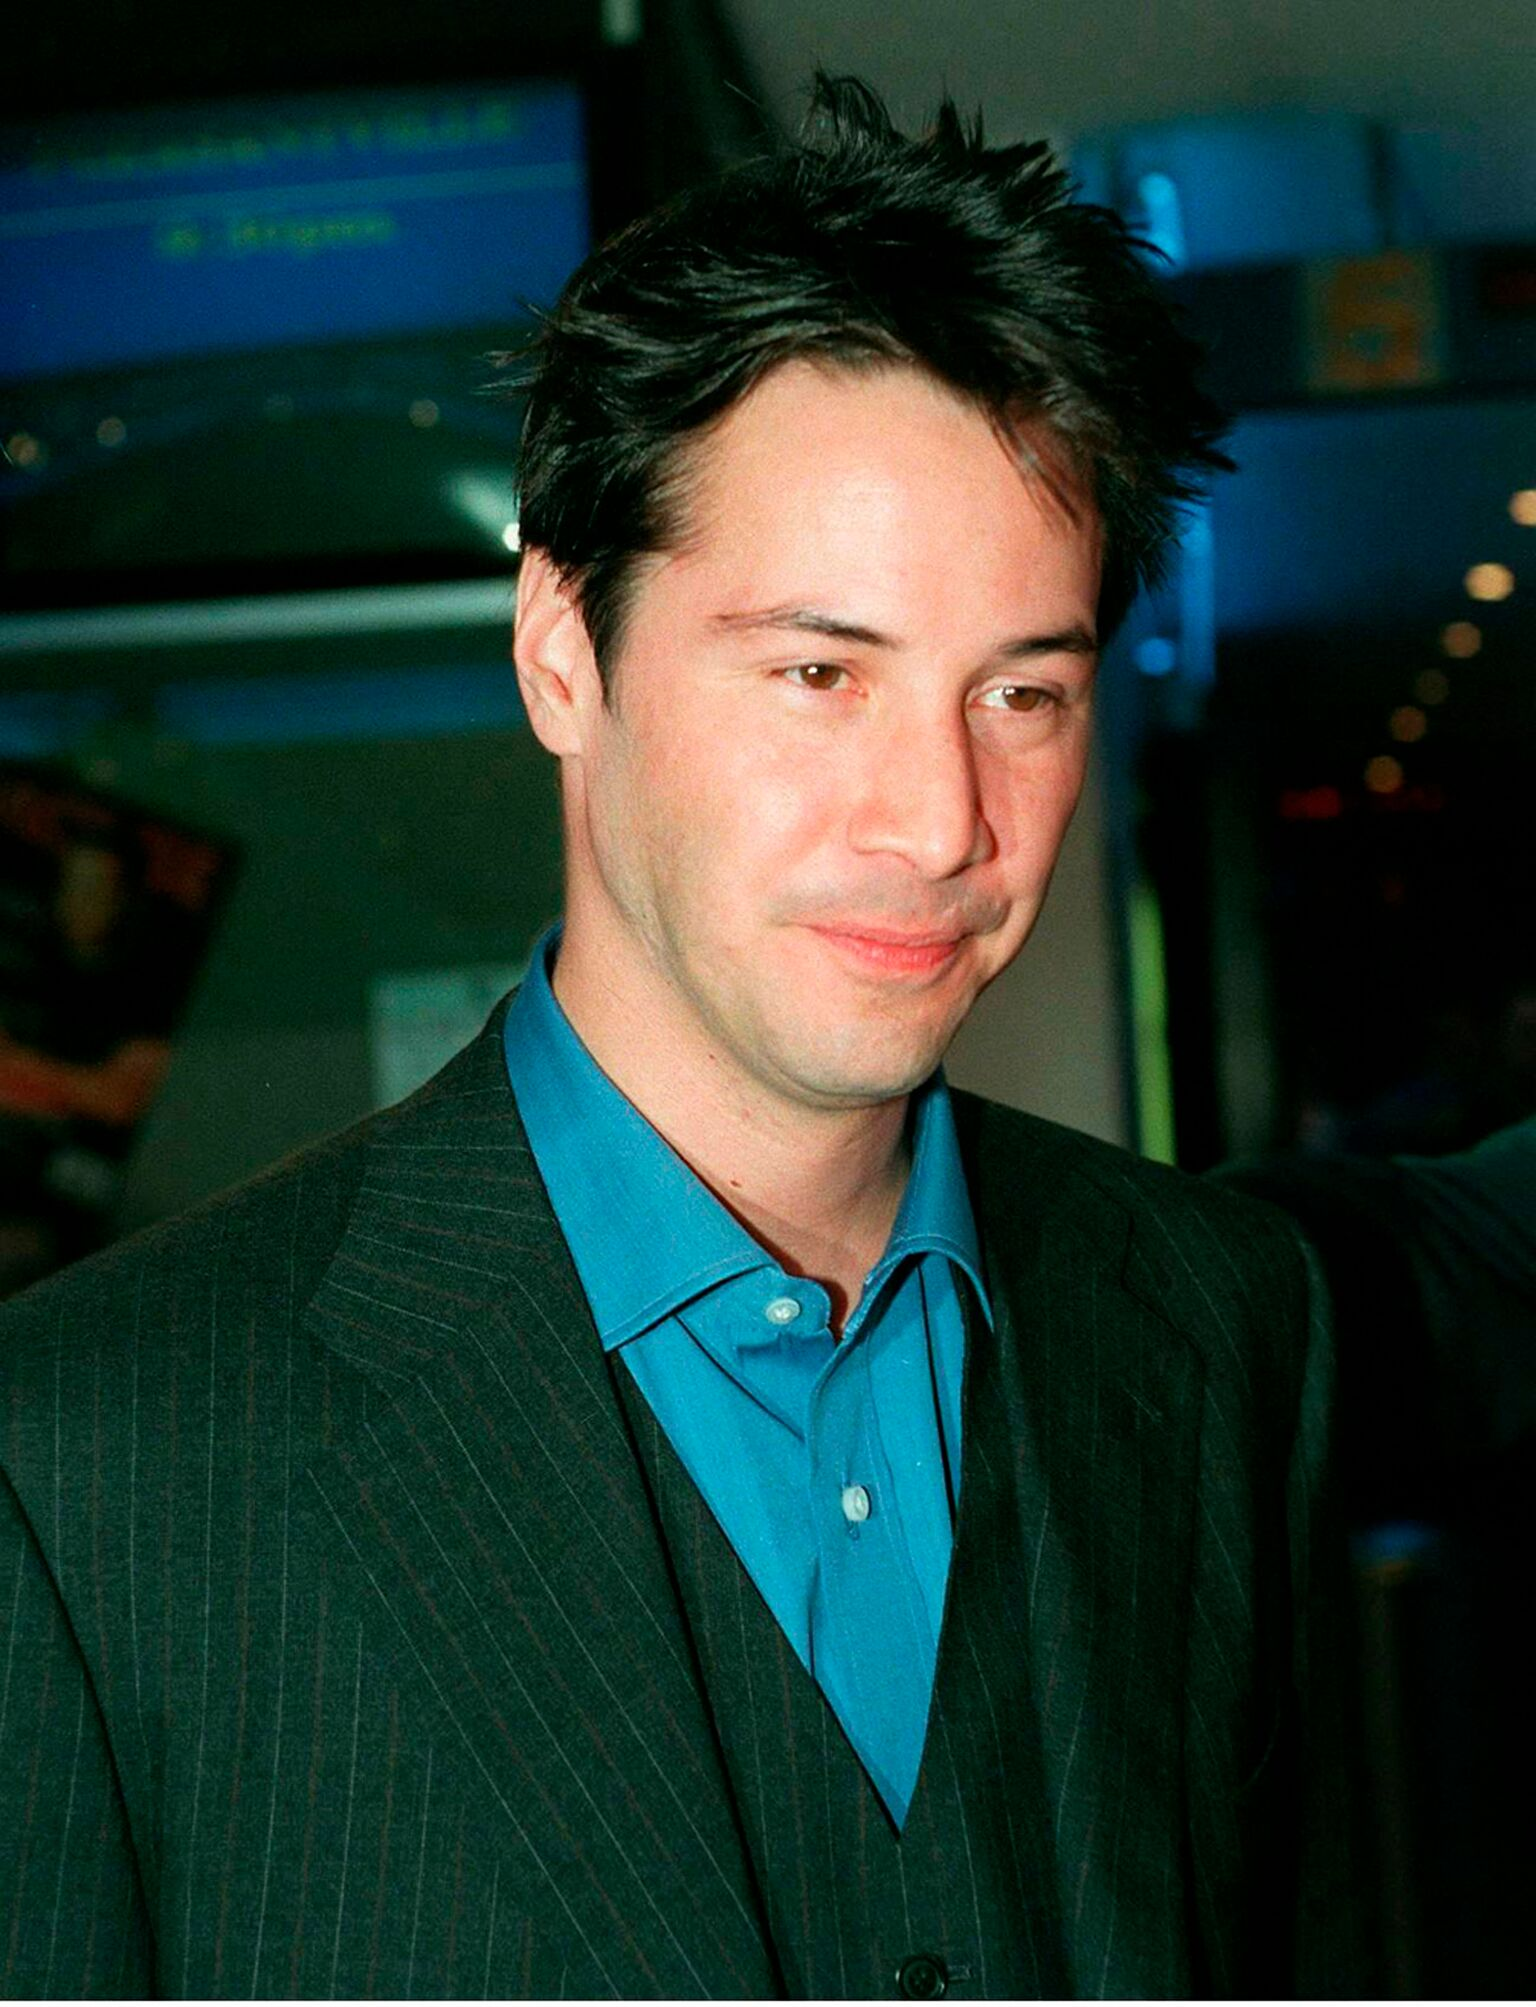 Keanu Reeves nimmt an der australischen Premiere von The Matrix in Sydney, Australien, teil  | Quelle: Getty Images